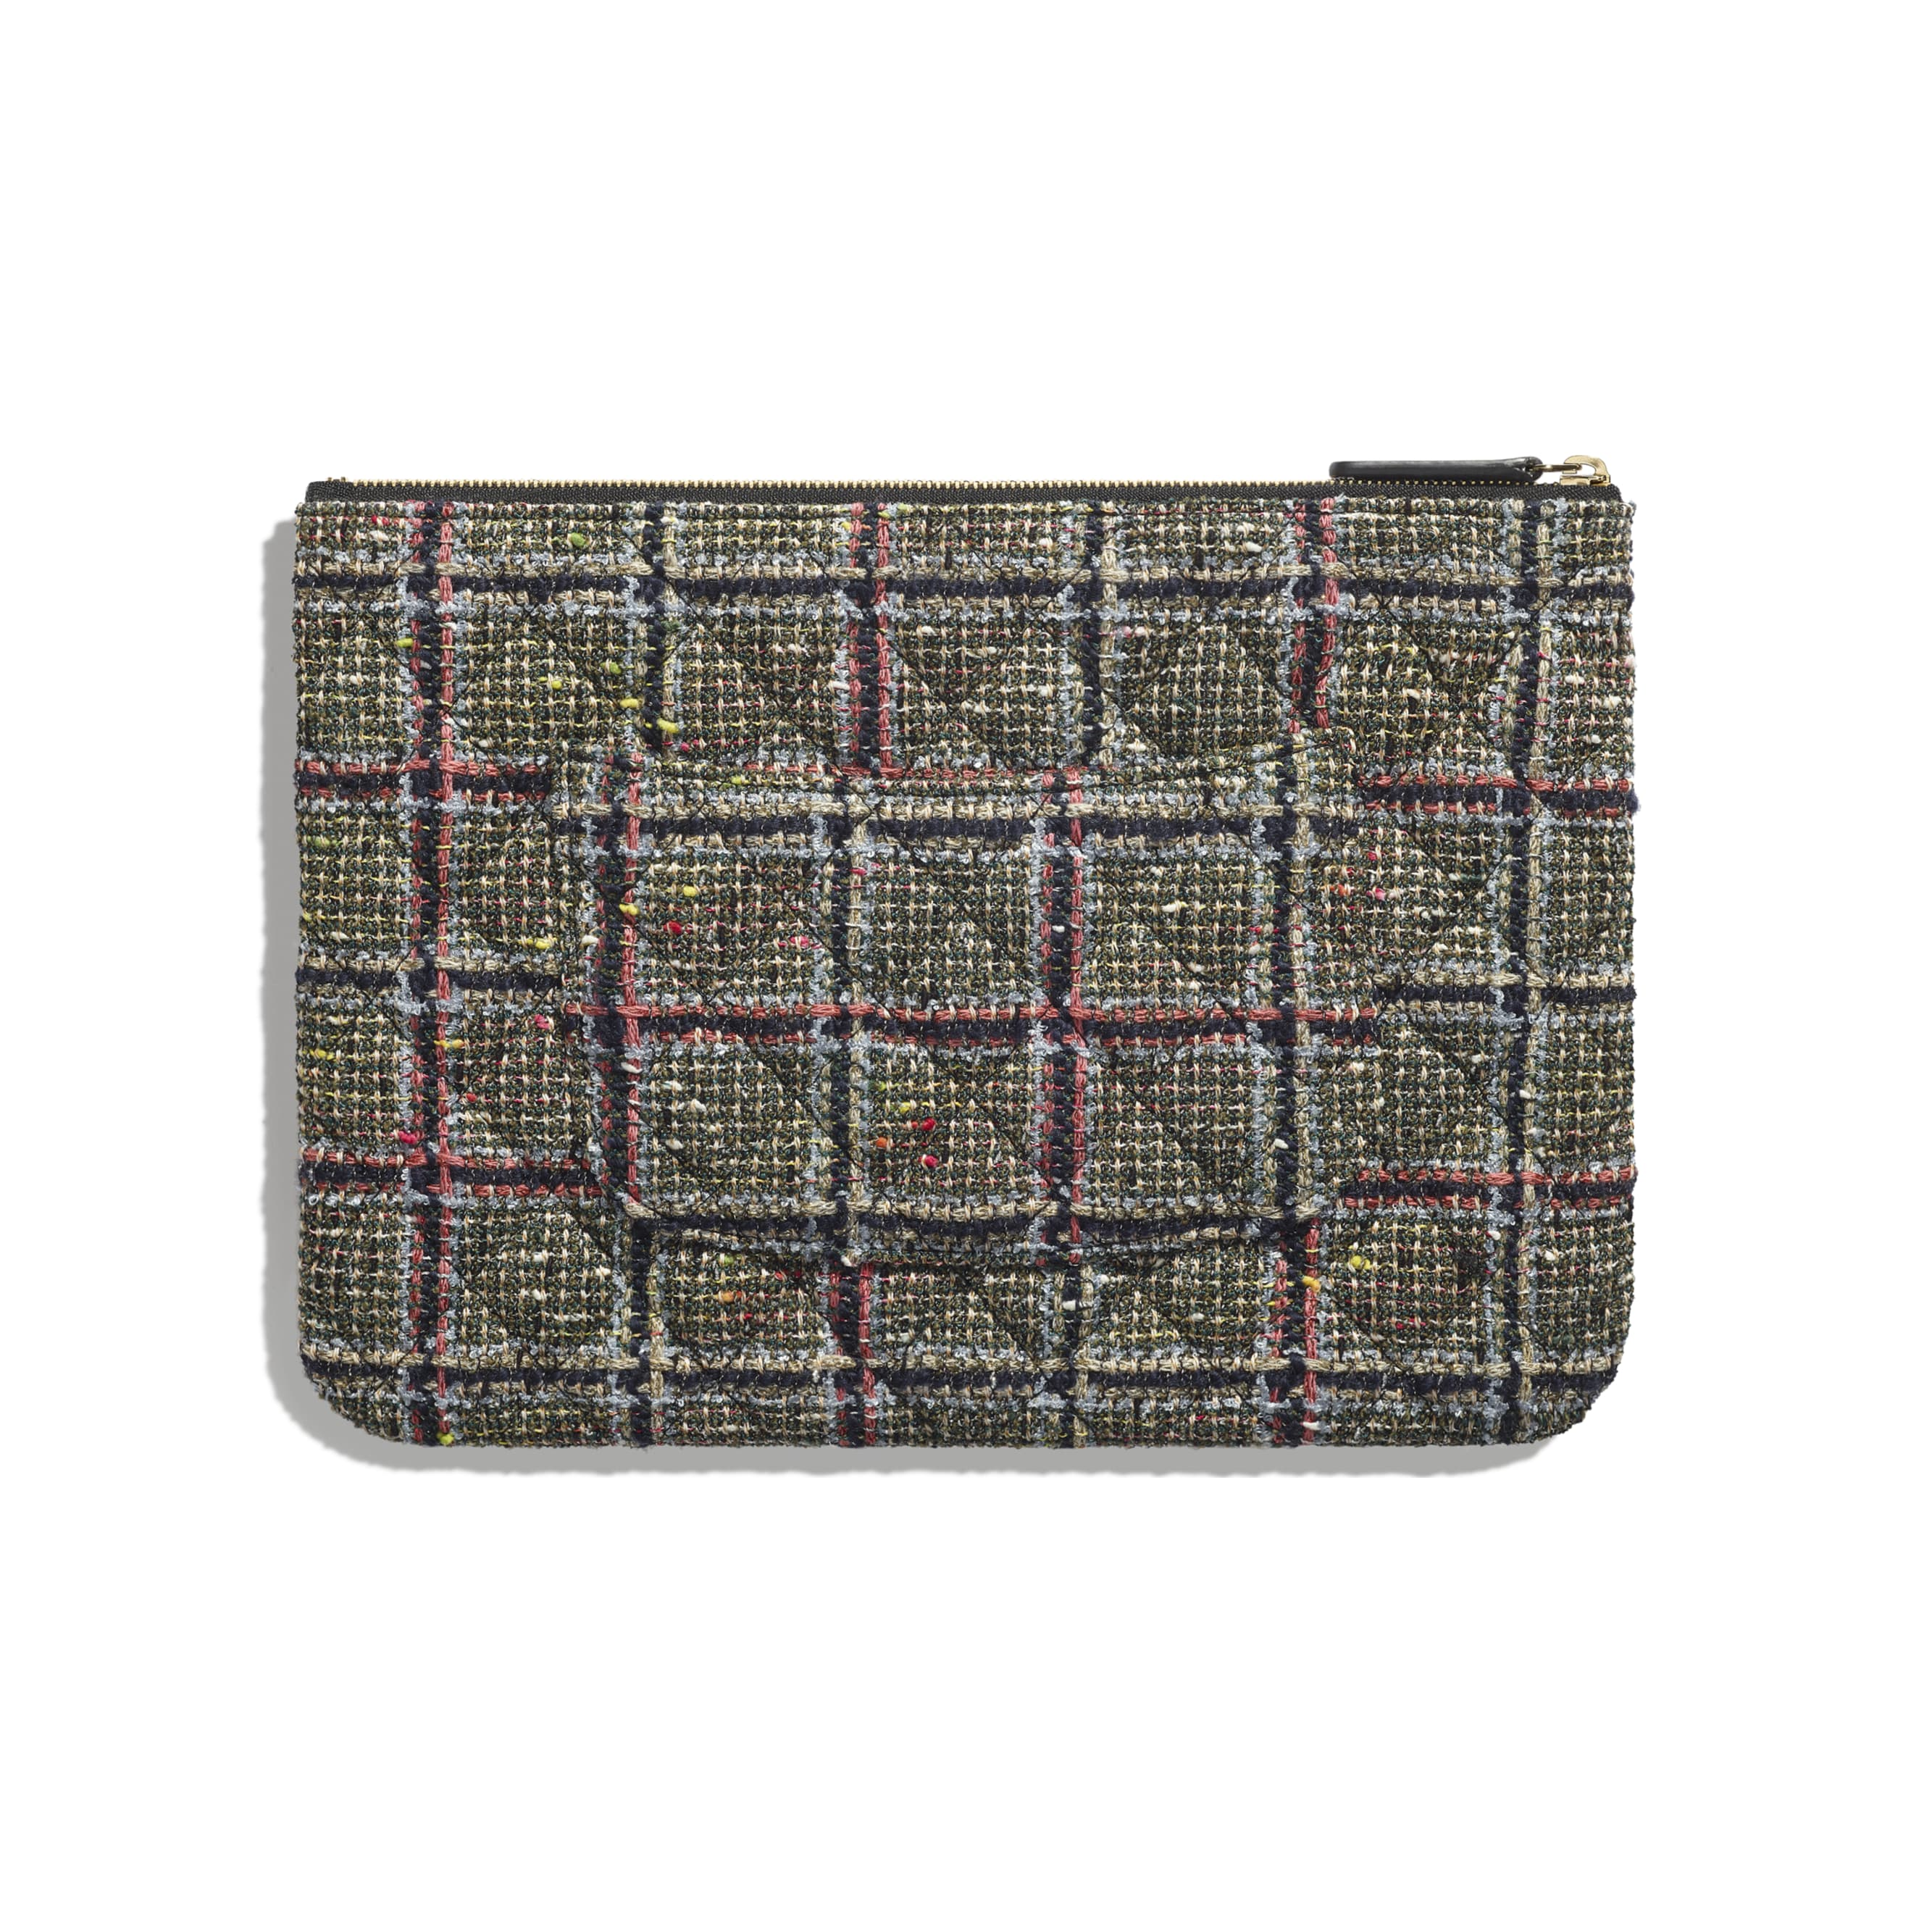 Pouch -  Black, Khaki, Grey & Red - Tweed, Lambskin & Gold Metal - Alternative view - see standard sized version